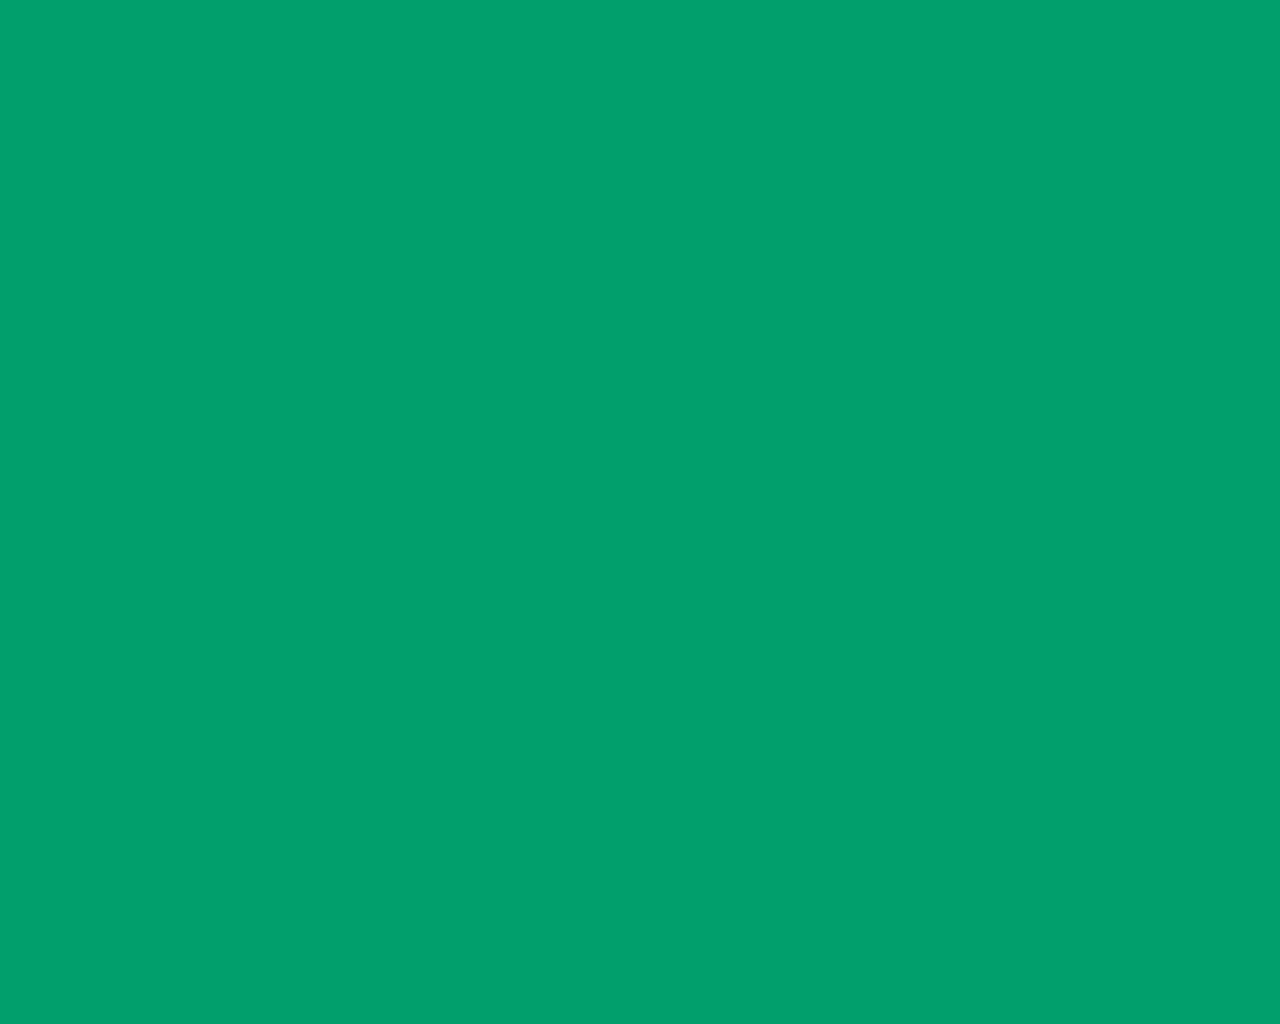 1280x1024 Green NCS Solid Color Background